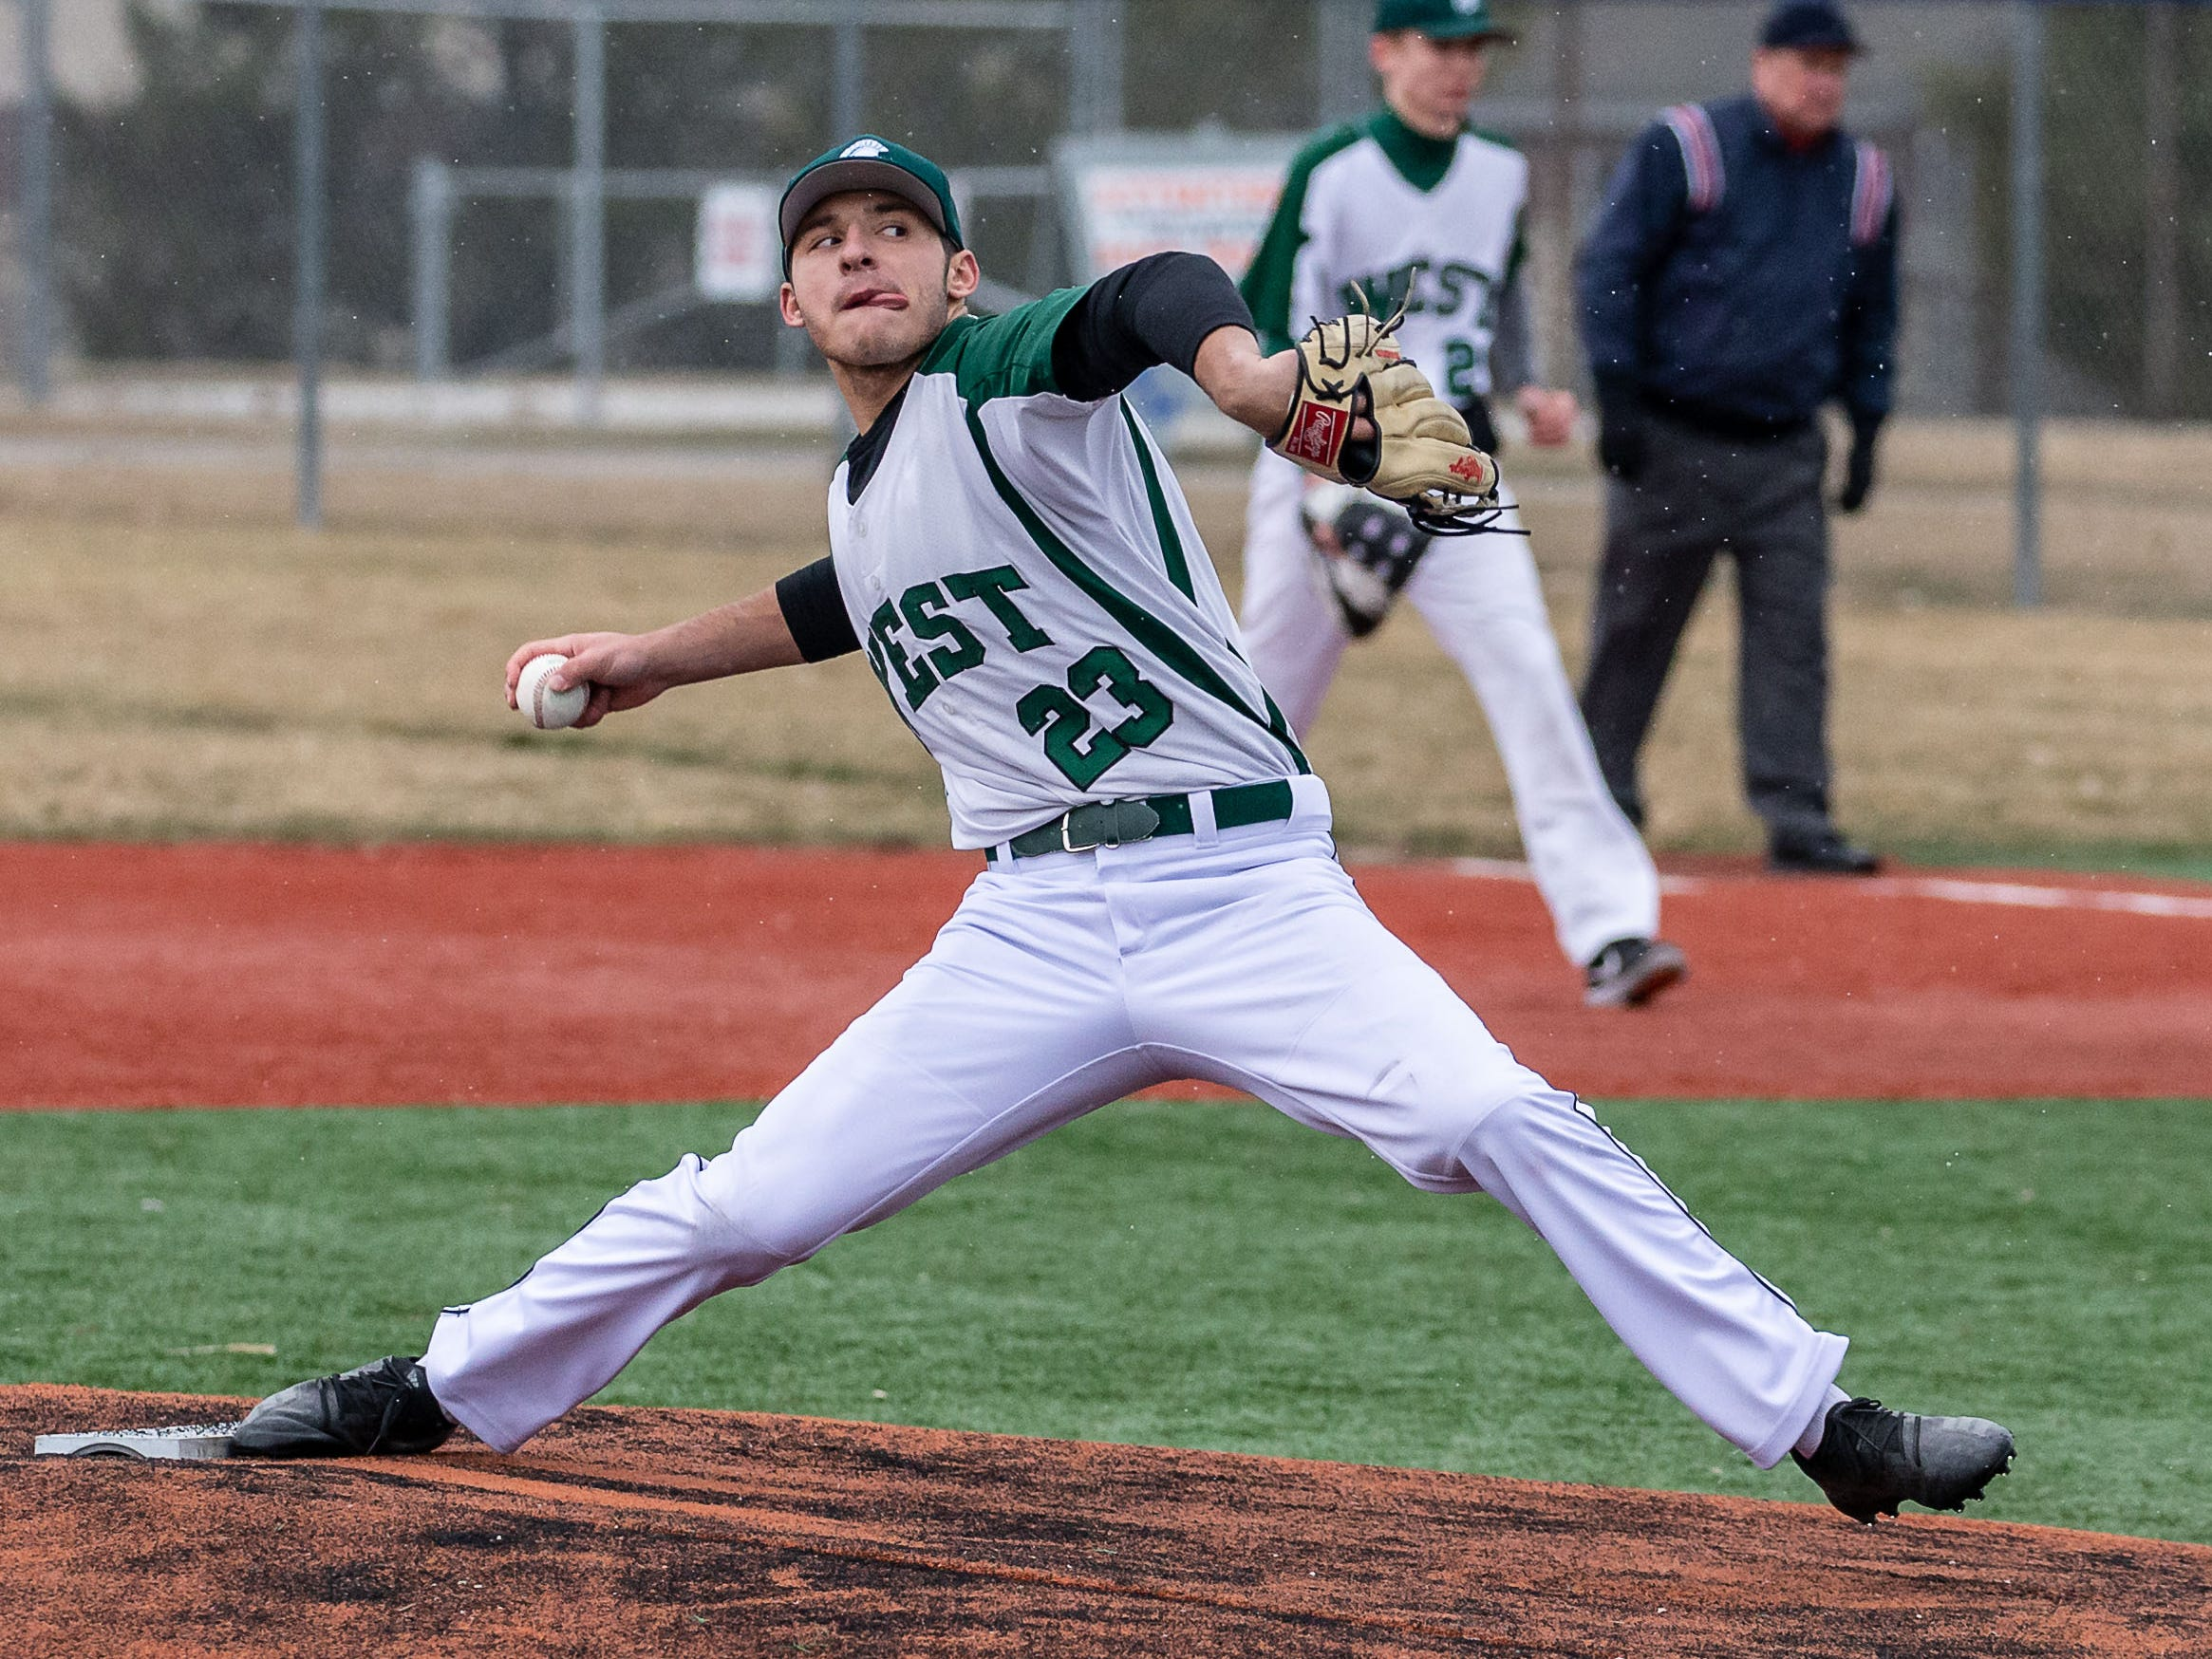 Wauwatosa West pitcher Spencer Whitlock (23) winds up during the game at Brookfield Central on Thursday, April 4, 2019.